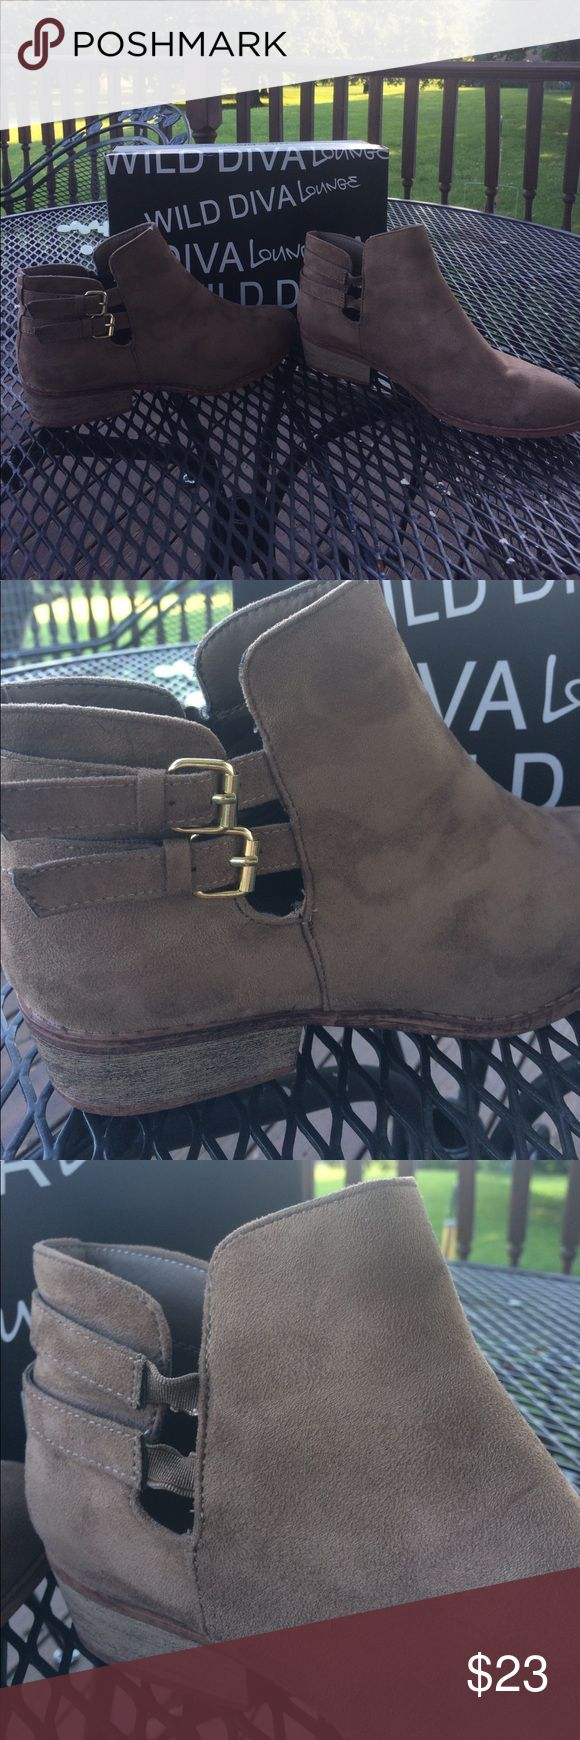 Wild Diva boots EUC.  Only worn a handful of times.  The stickers are still on the bottom of the boots.  Offers welcomed 🐝 Shoes Ankle Boots & Booties